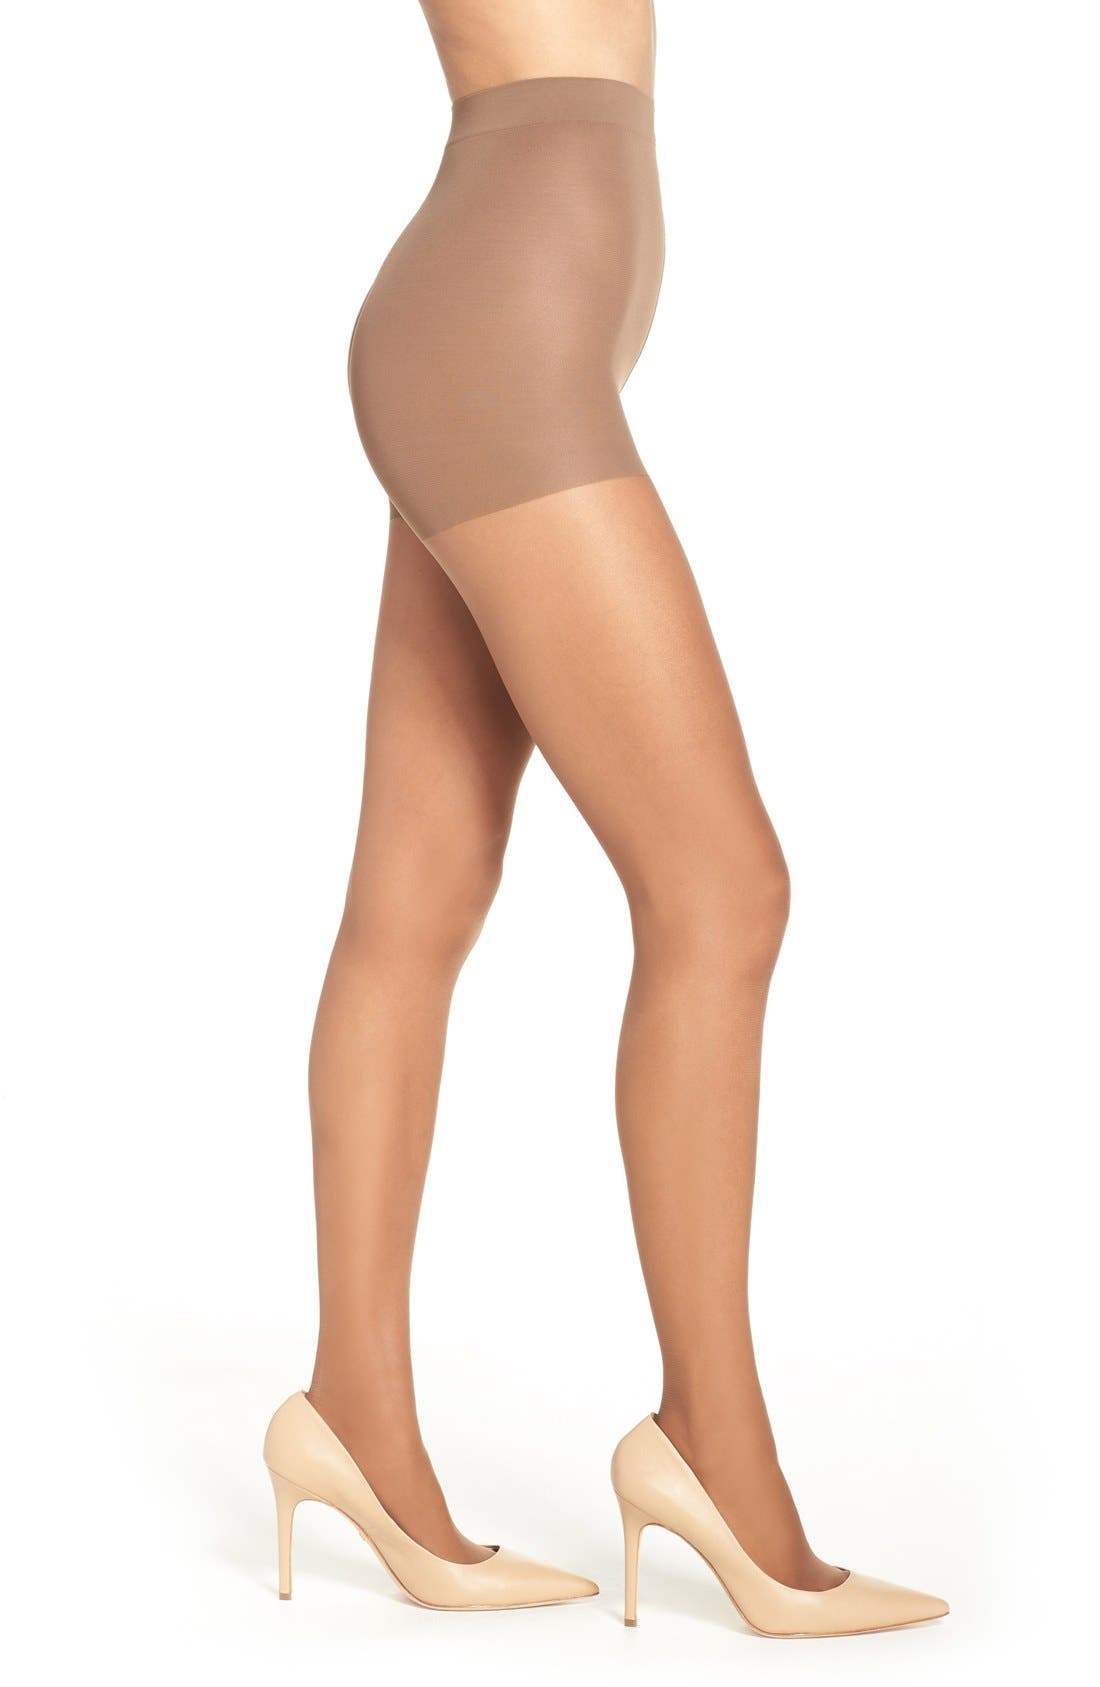 Control top panties lightly shape your waist, hips and rear in these sheer 20 denier pantyhose that give your legs a smooth, airbrushed look. Sheer toes make this style work with a variety of footwear choices, while the improved panty top has an enhanced run guard. Style Name: Nordstrom Control Top Pantyhose. Style Number: 5104944 1. Available in stores.